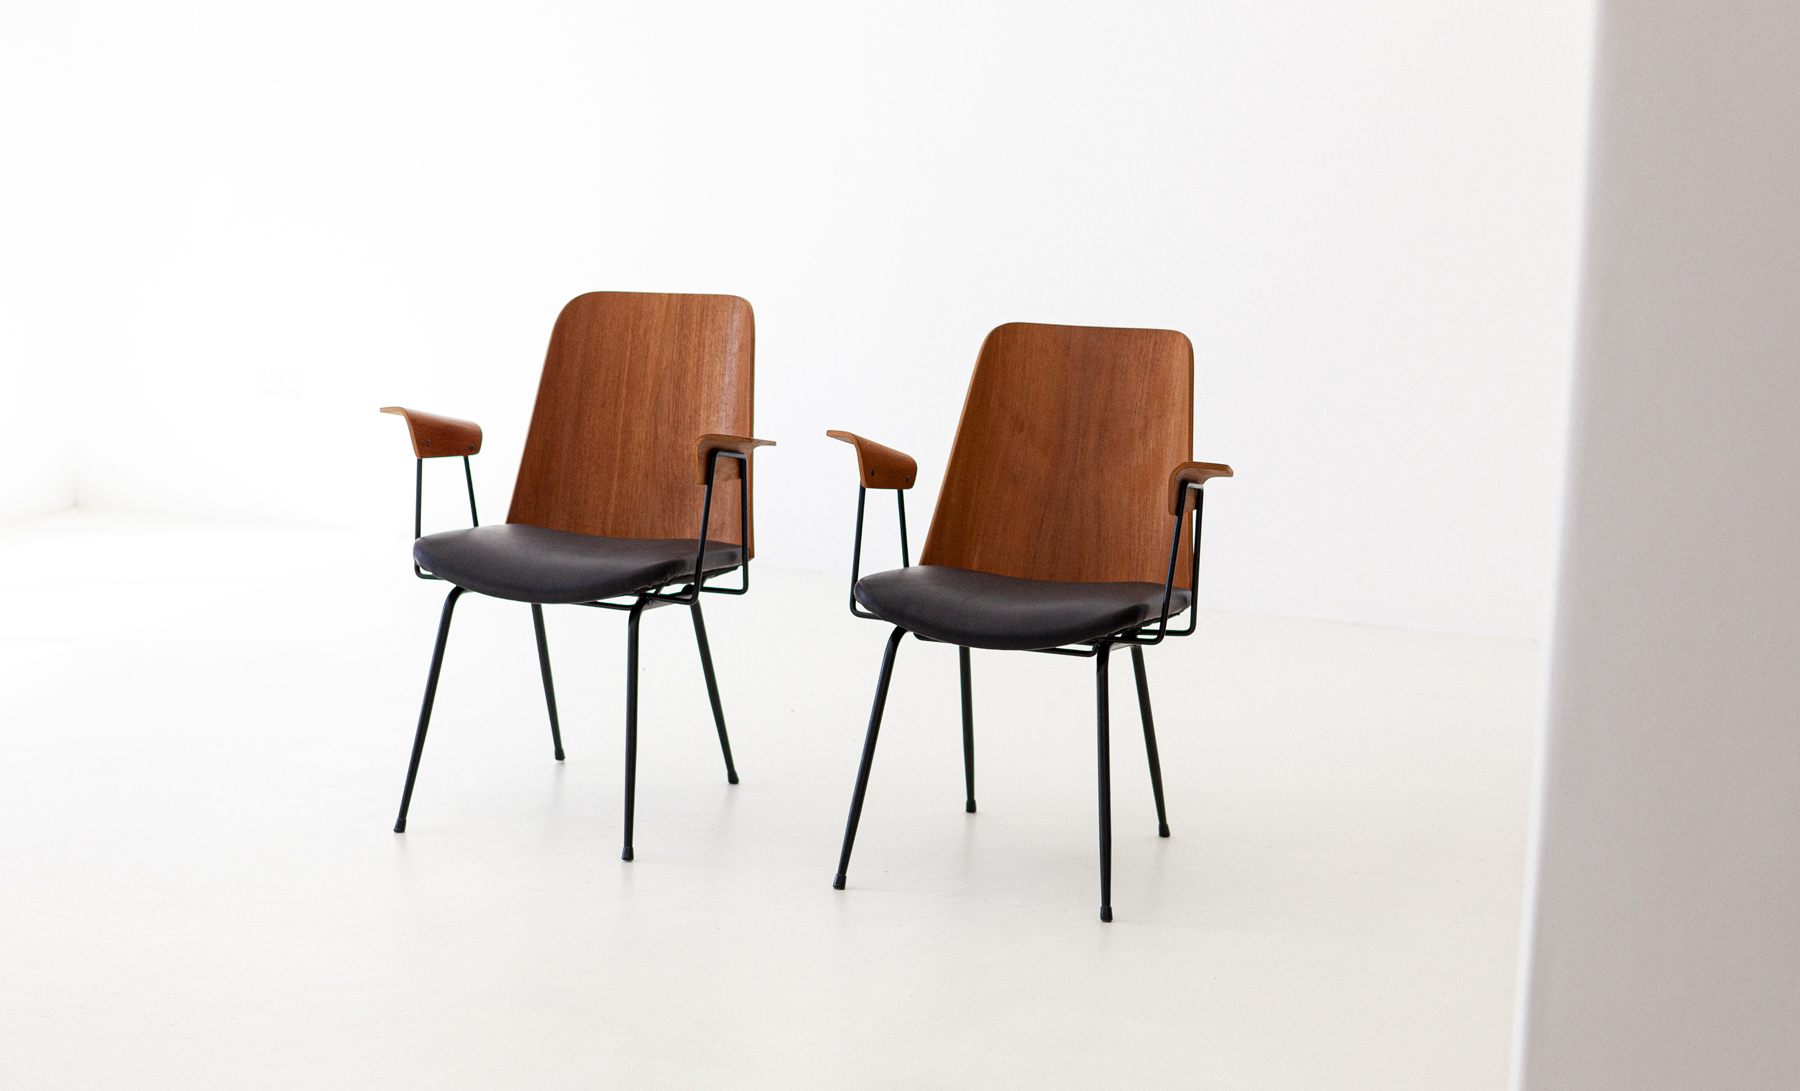 Italian-modern-desk-chairs-by-carlo-ratti-6-se287